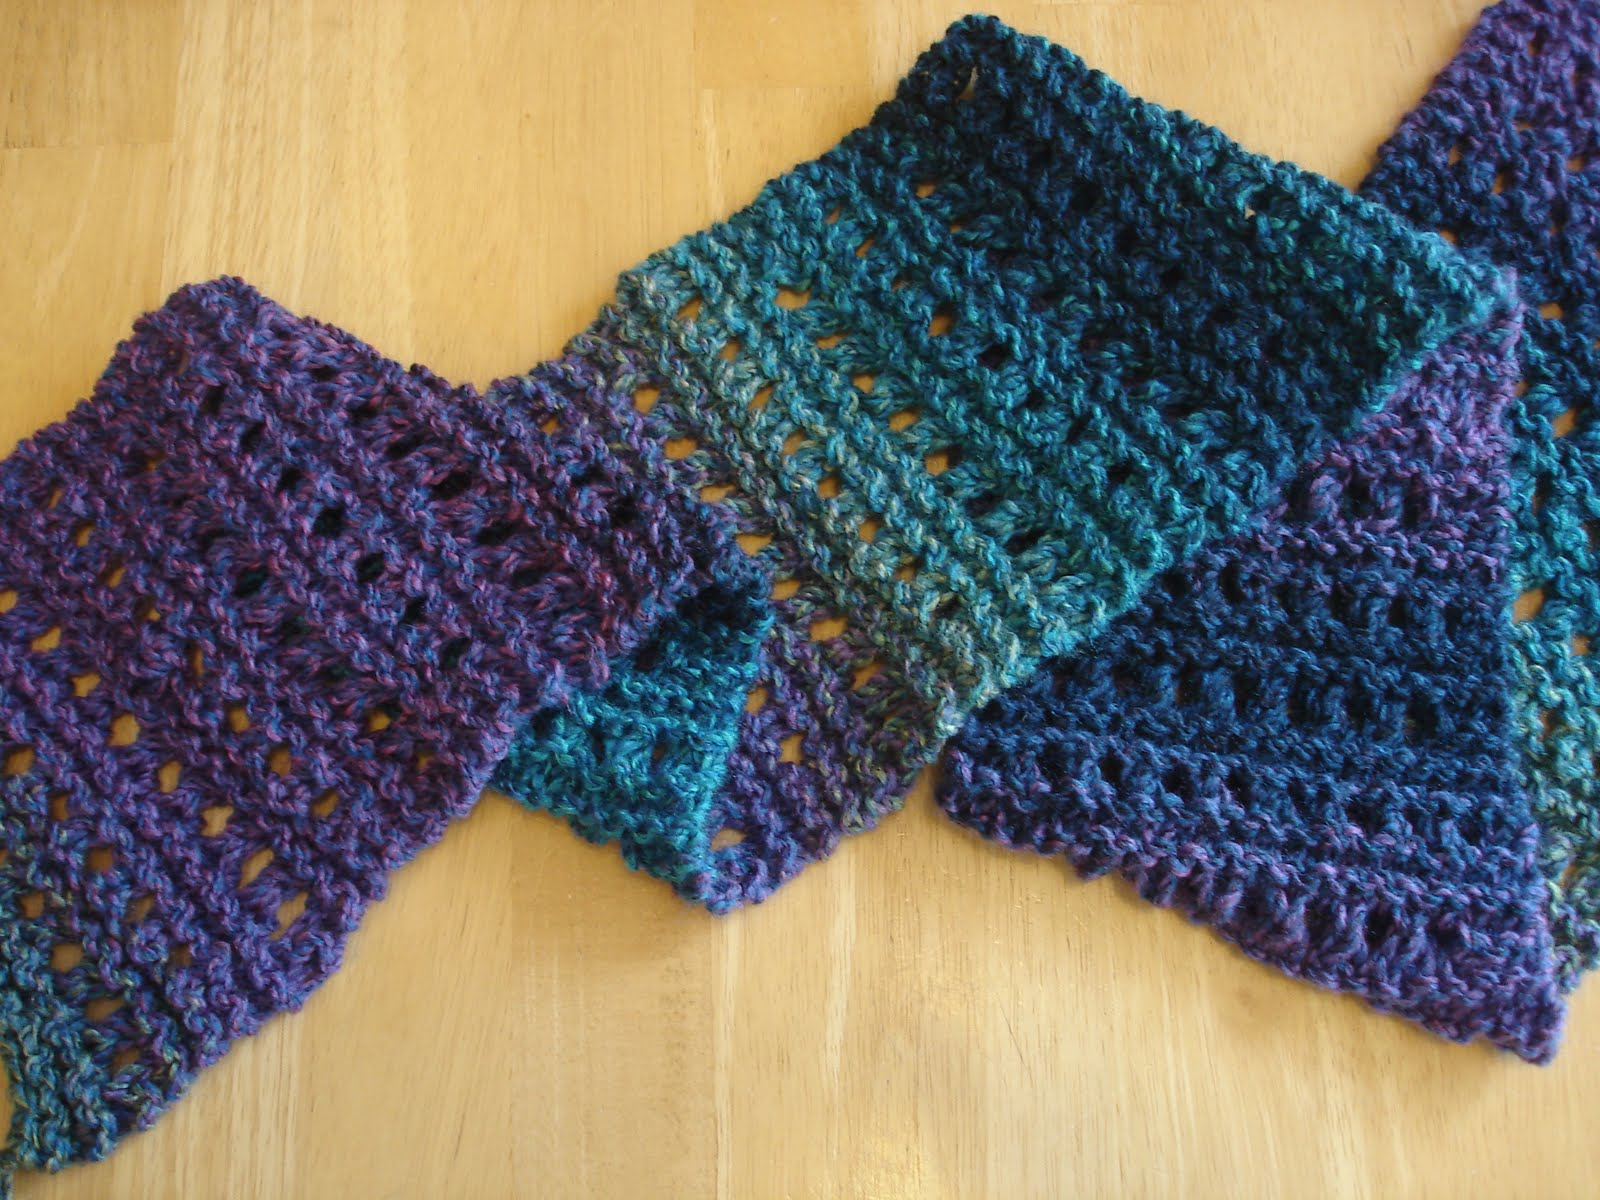 Beginner Knit Scarf Patterns : Fiber Flux: Free Knitting Pattern: Tweedy Eyelet Scarf!